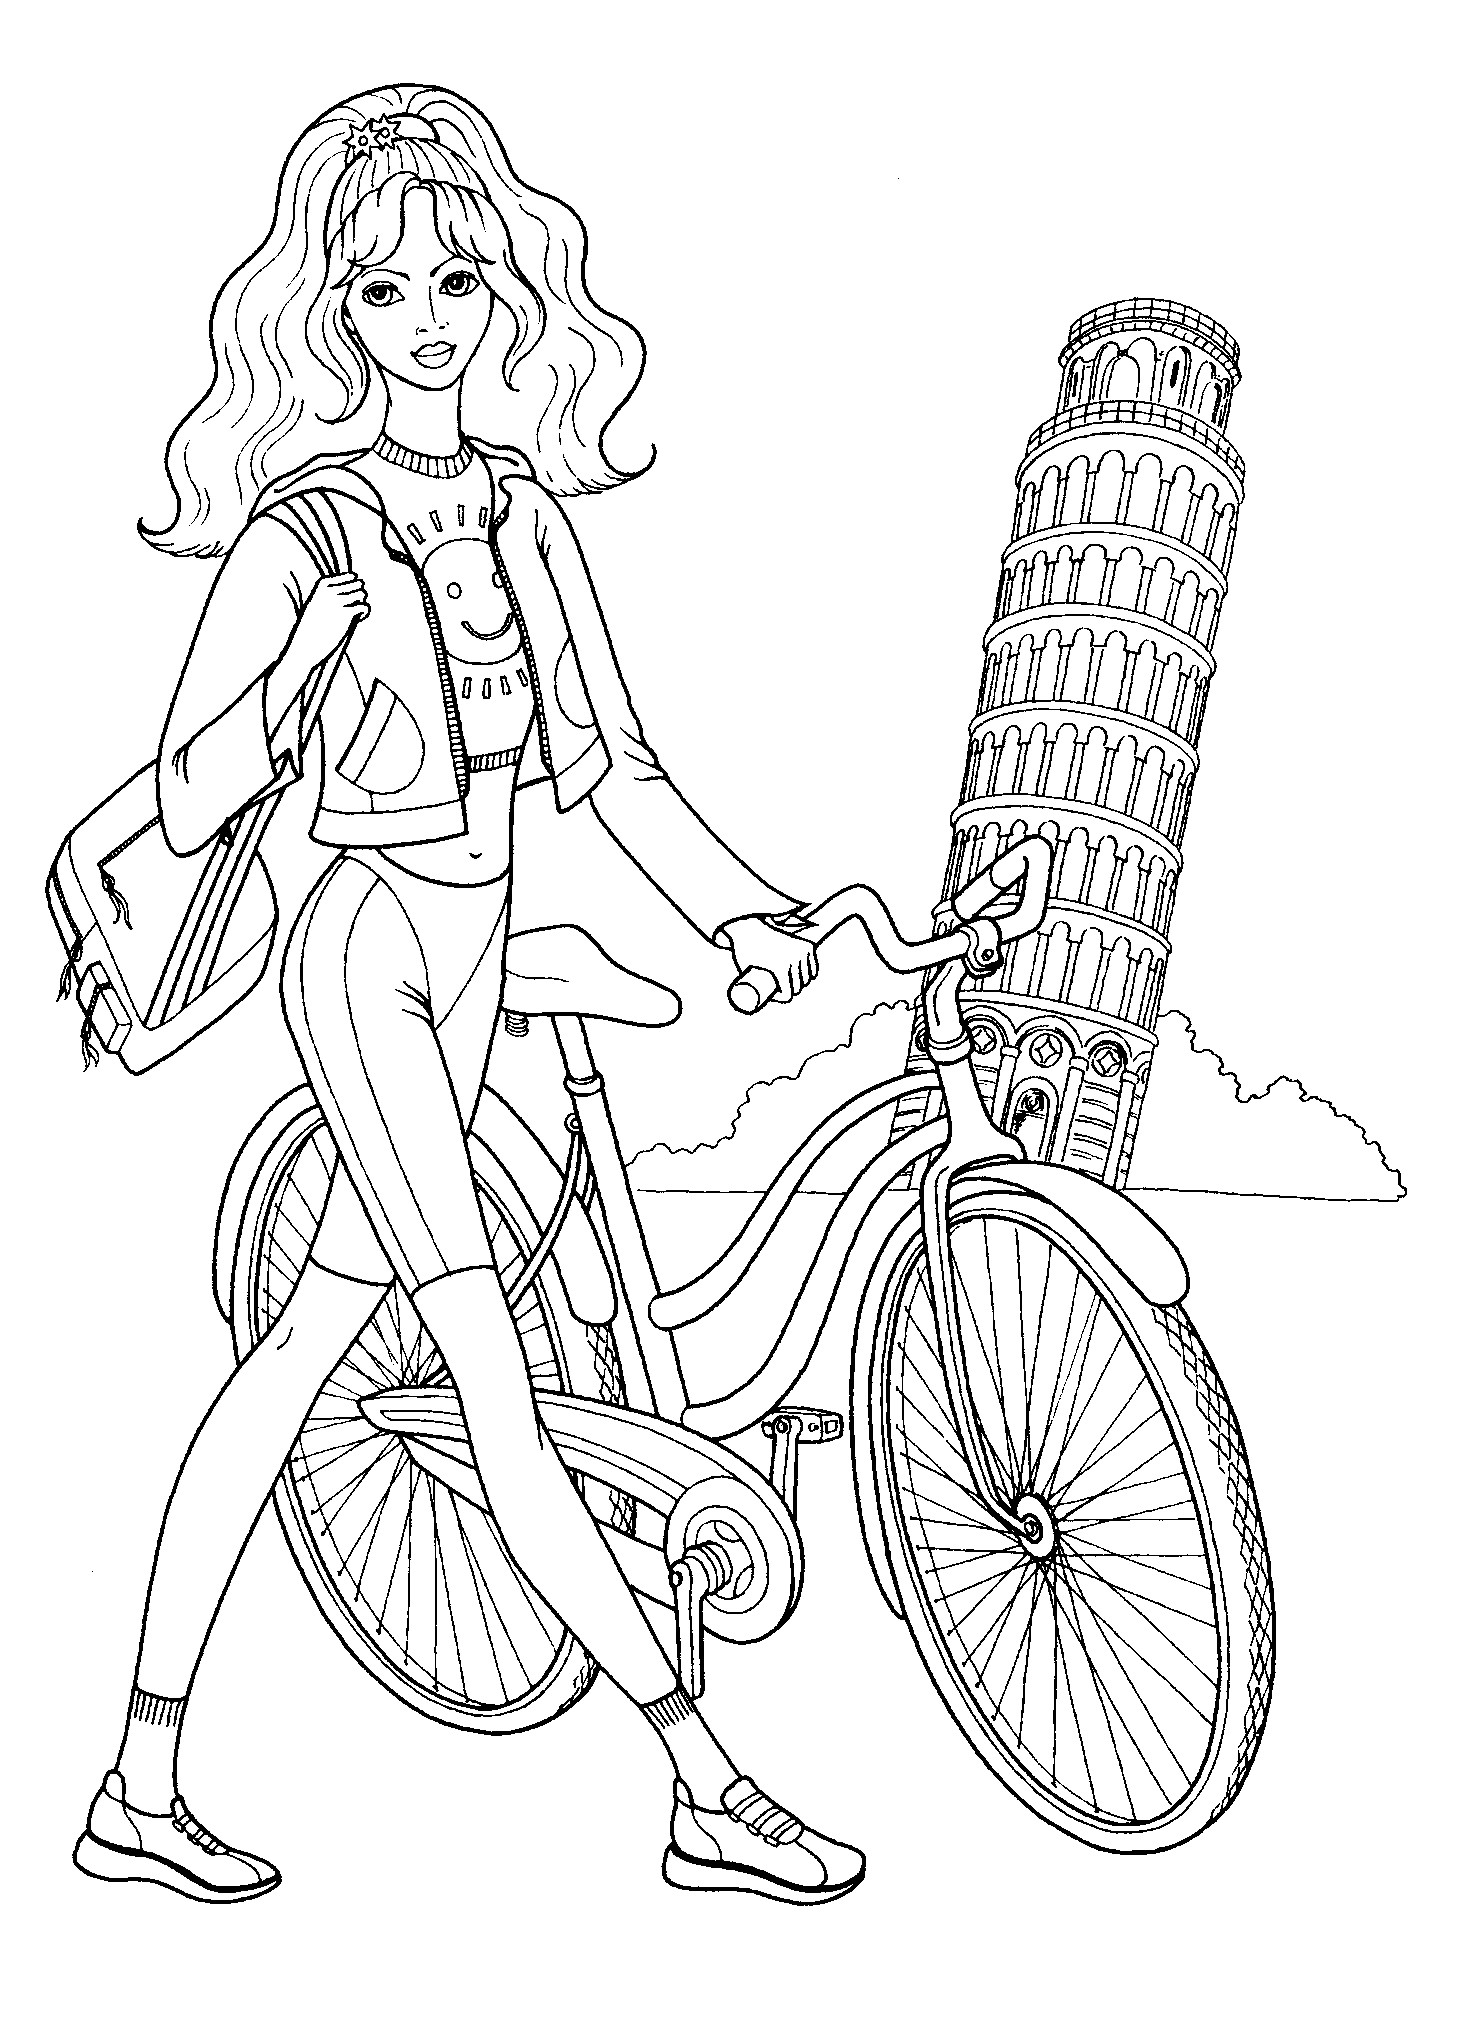 coloring pages for girls designs fashion design coloring pages fashion trends pages designs girls coloring for